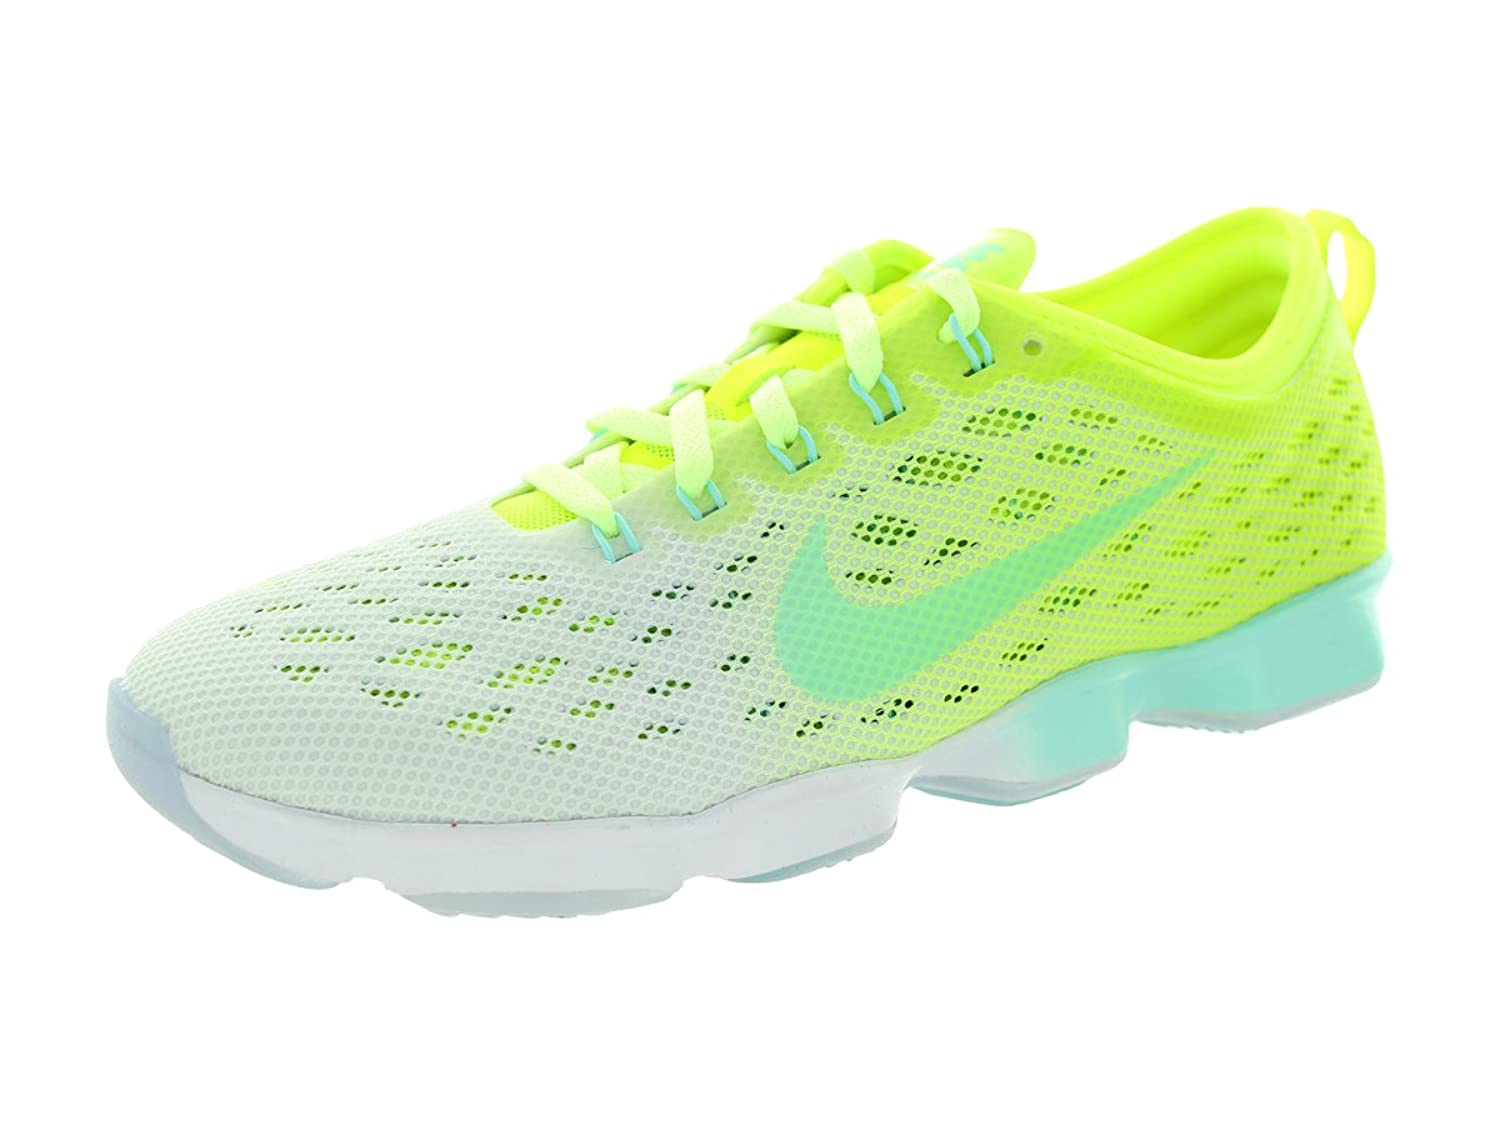 on sale 74348 632e7 Amazon.com   Nike Women s Zoom Fit Agility W Ankle-High Synthetic Running  Shoe   Road Running